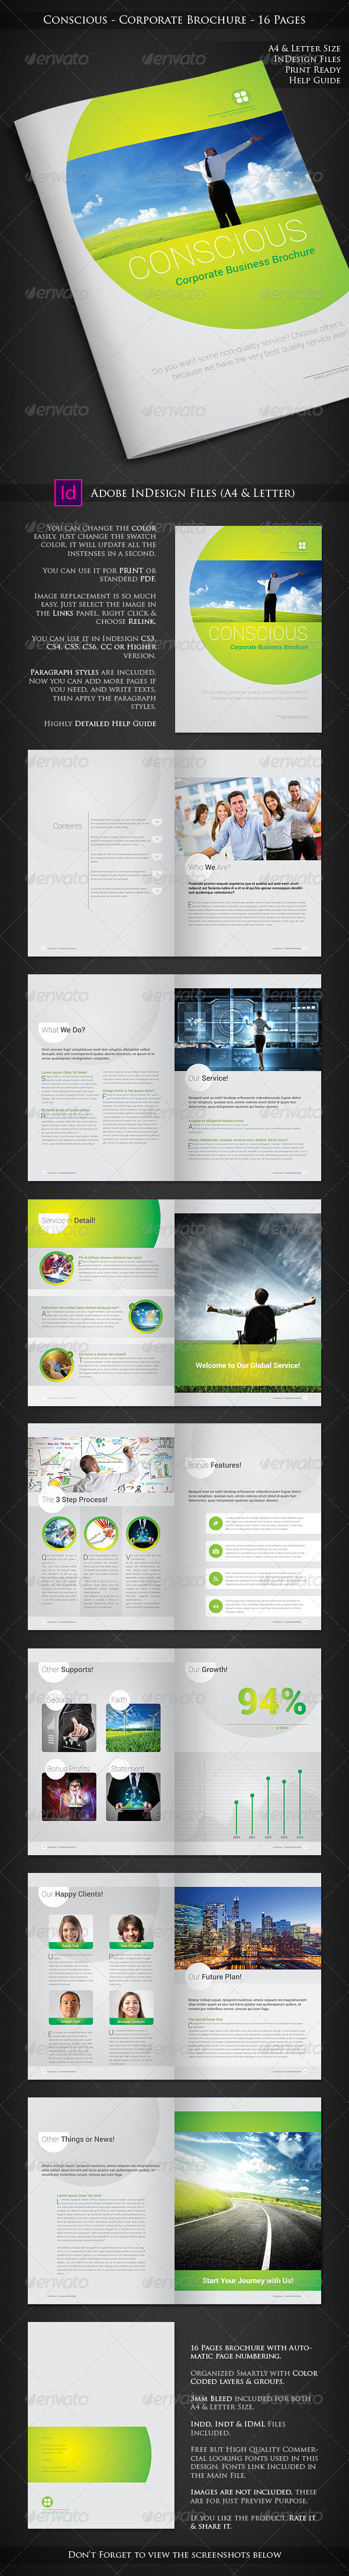 GraphicRiver Conscious Corporate Brochure Design 16 Pages 6789947